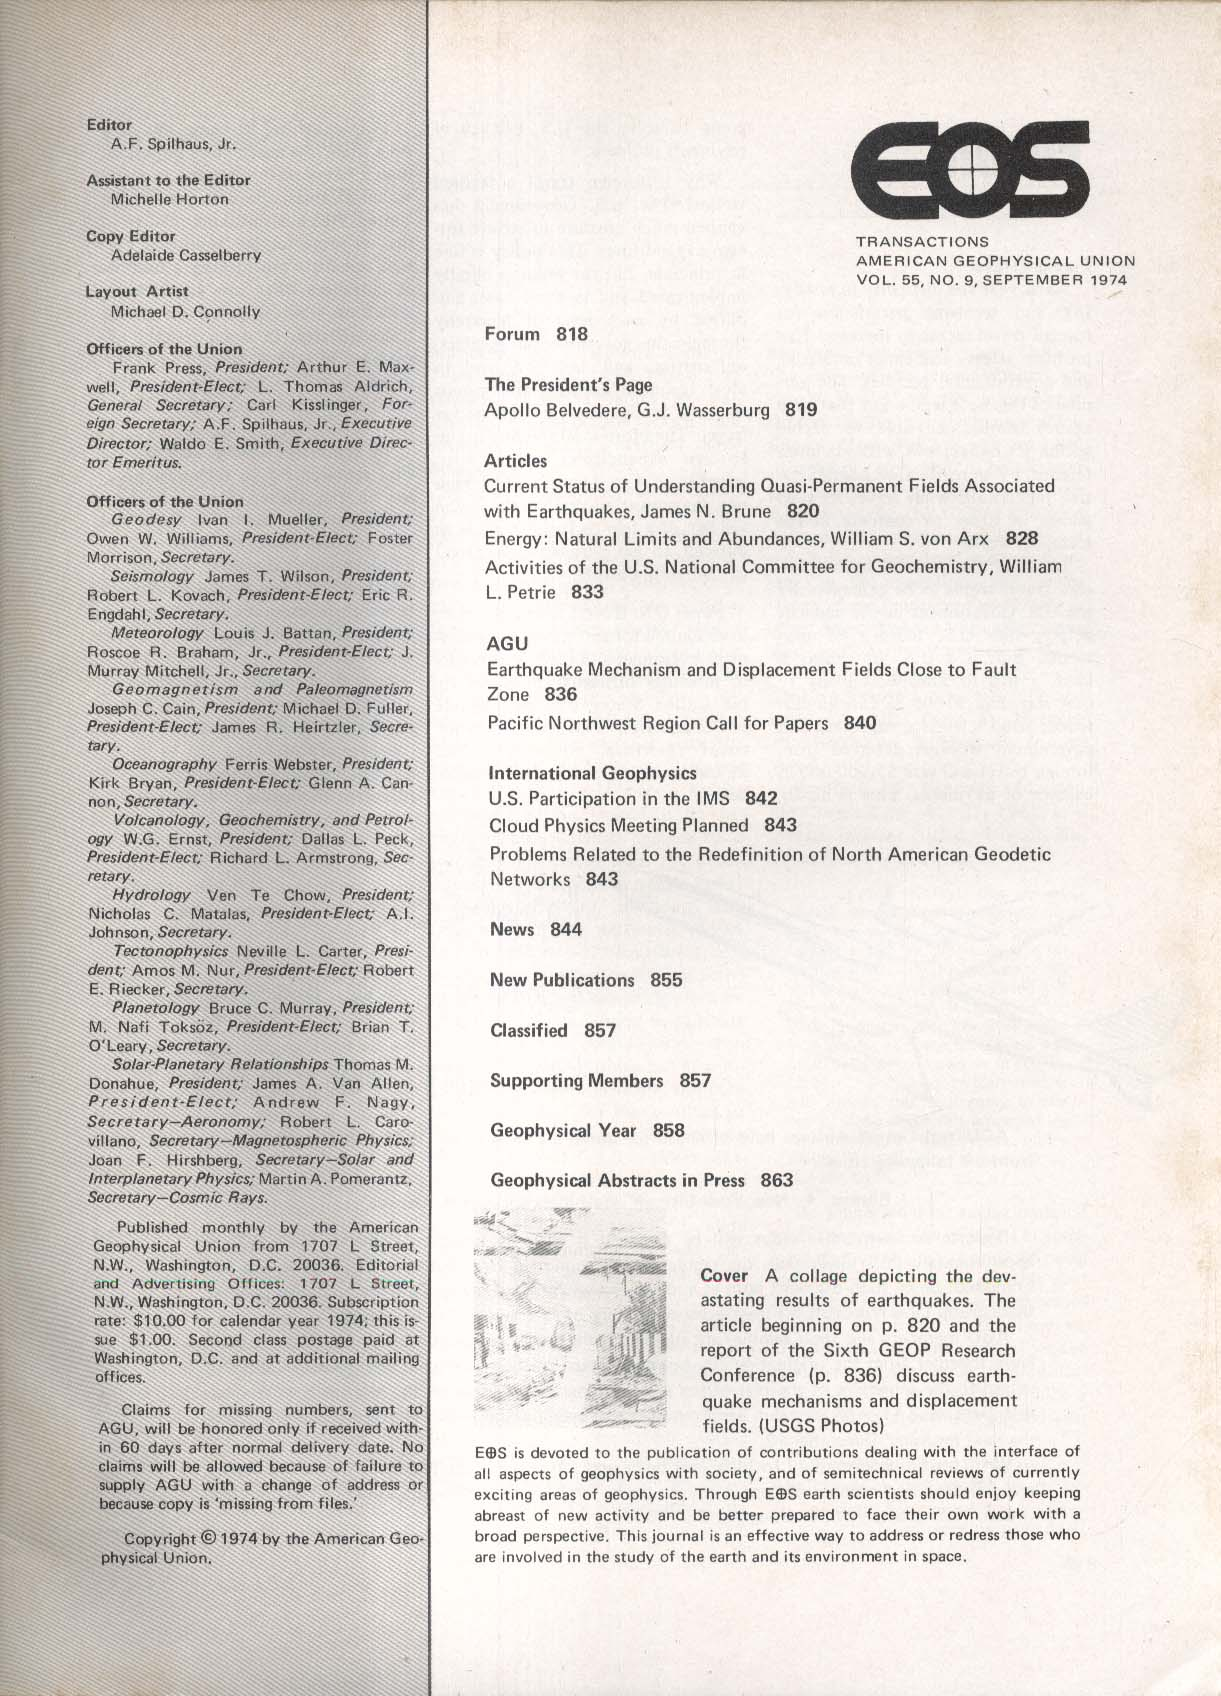 EOS Transactions American Geophysical Union 9 1974 Quasi-Permanent Fields +